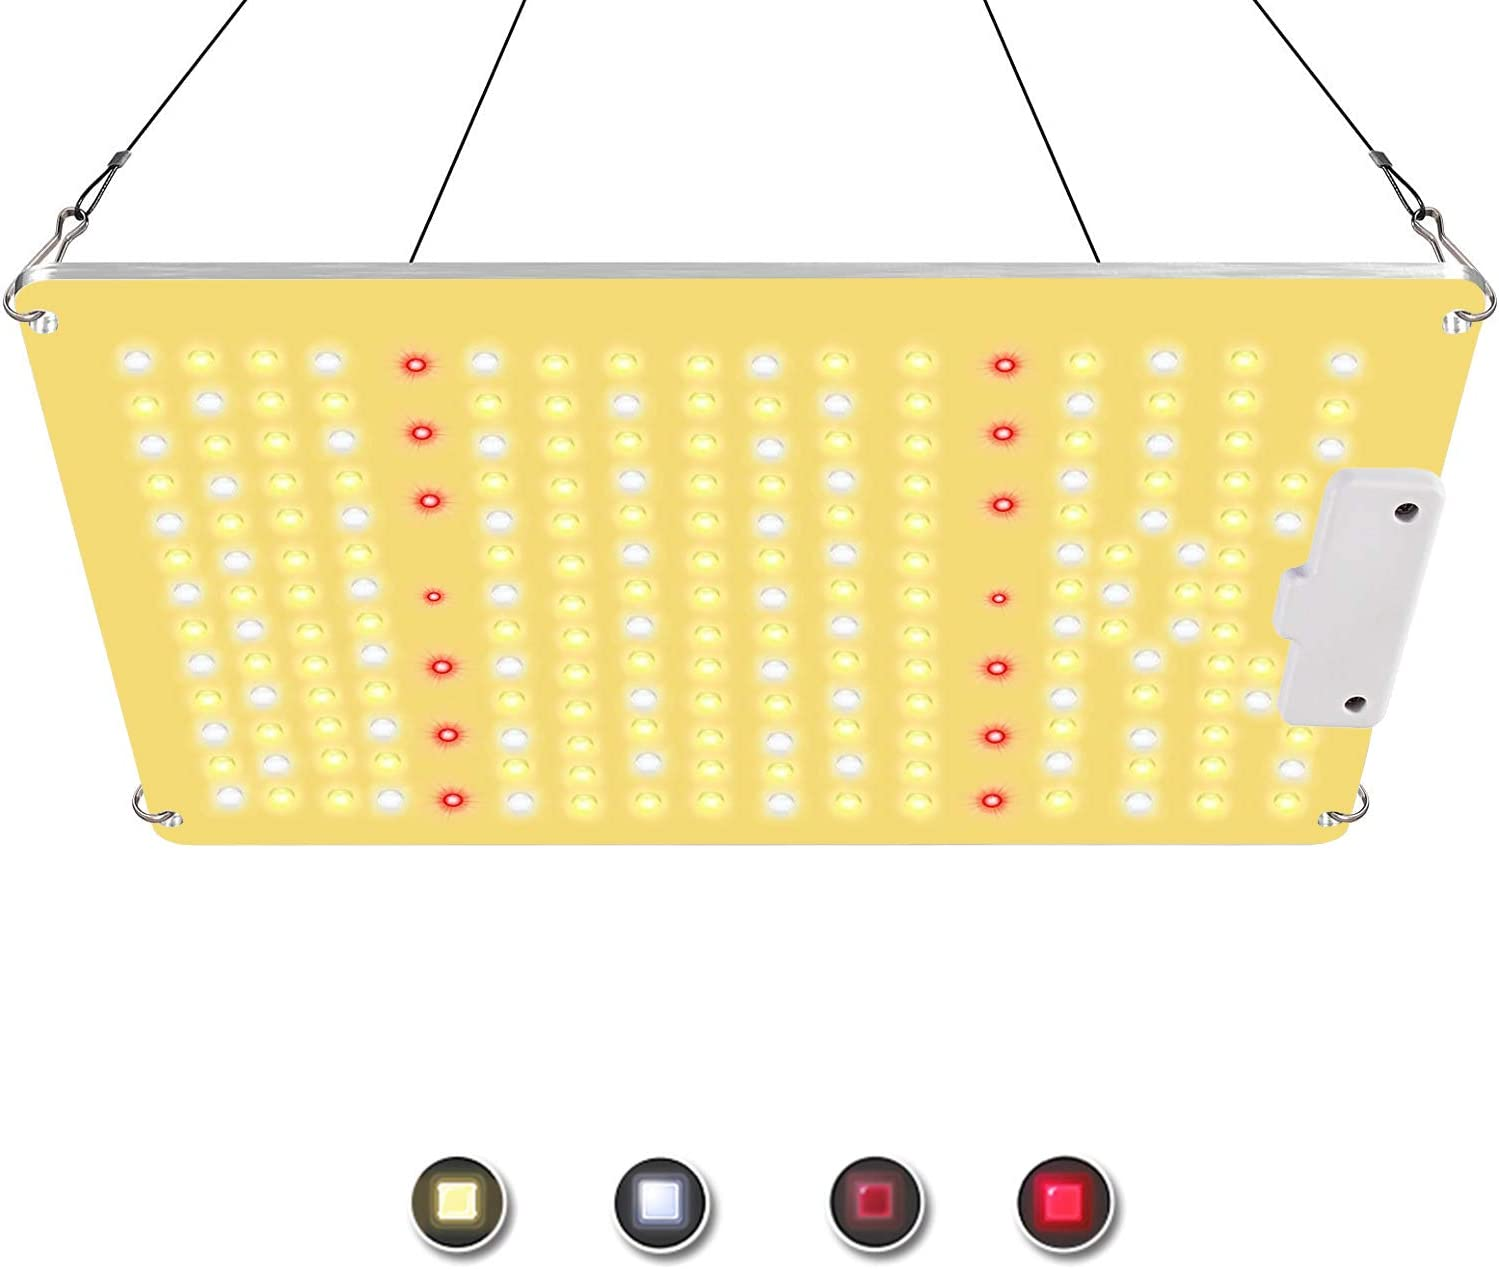 Mrhua Newest QB 1000W Led Grow Lights 2x2ft IR Sunlike Full Spectrum with High Efficacy Diodes Commercial Plant Grow Light for Indoor Plants Hydroponic Plants,Veg Bloom and Greenhouse